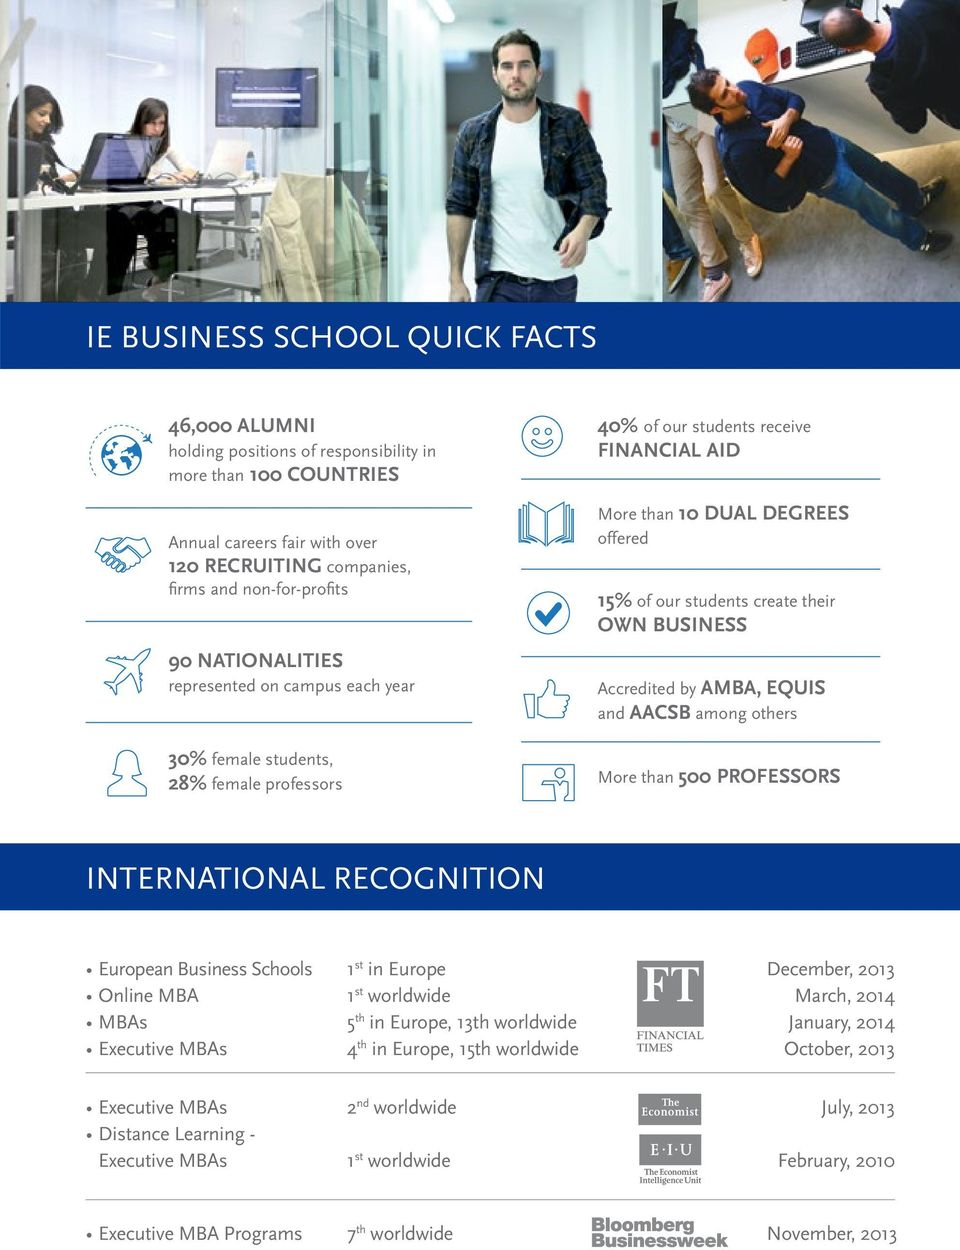 own business Accredited by AMBA, EQUIS and AACSB among others More than 500 professors INTERNATIONAL RECOGNITION European Business Schools 1 st in Europe December, 2013 Online MBA 1 st worldwide